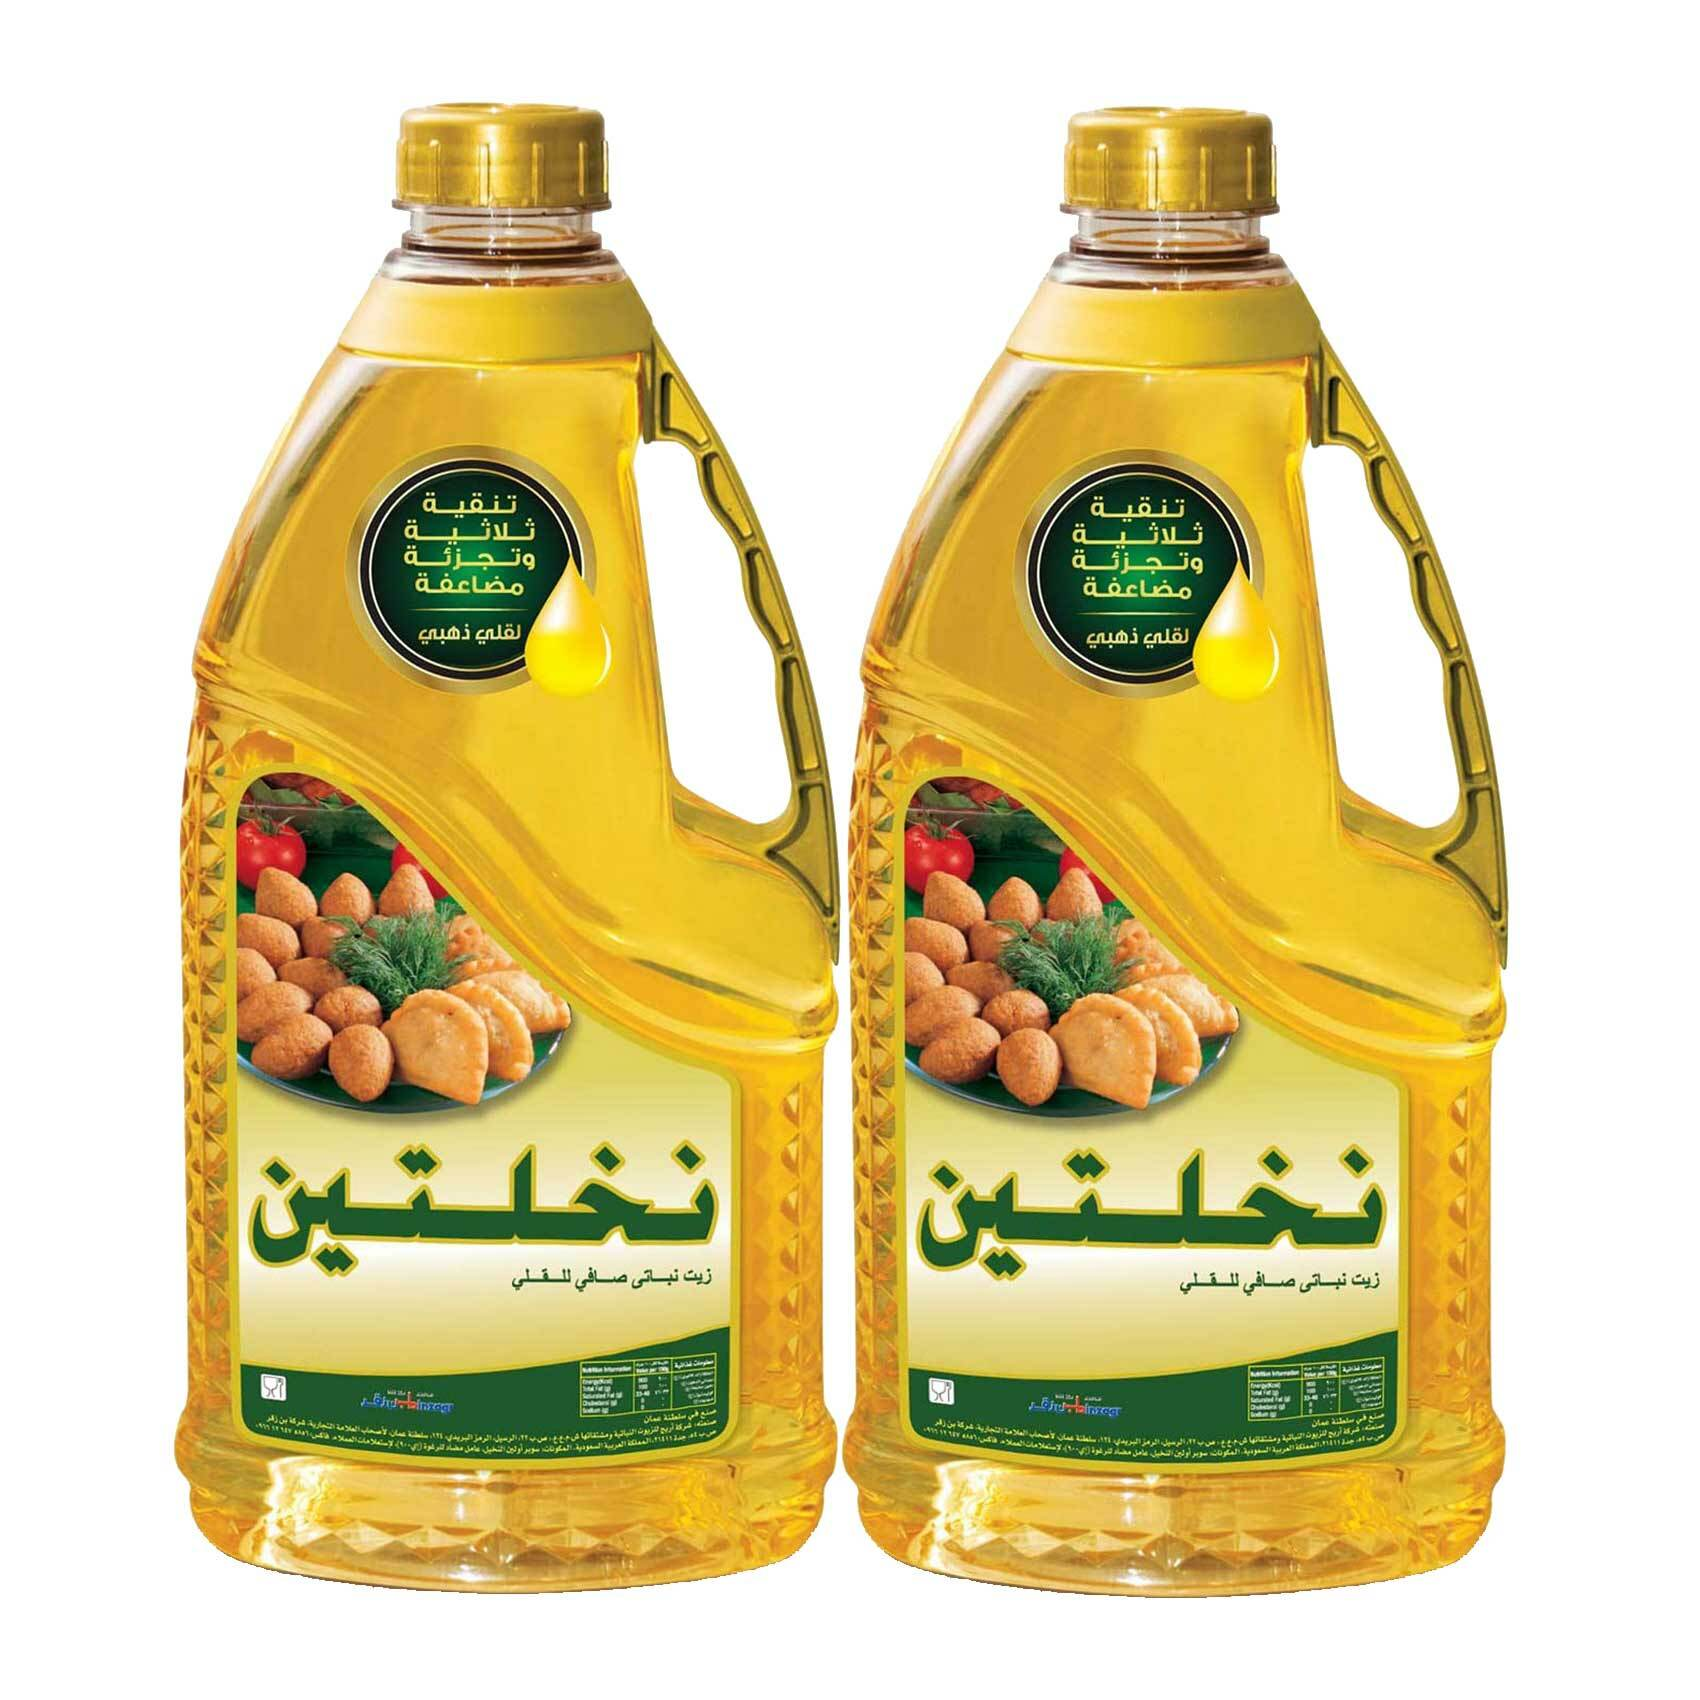 Buy Nakhlatain Puer Vegetable Oil For Frying 1 5 L X 2 Online Shop Food Cupboard On Carrefour Saudi Arabia